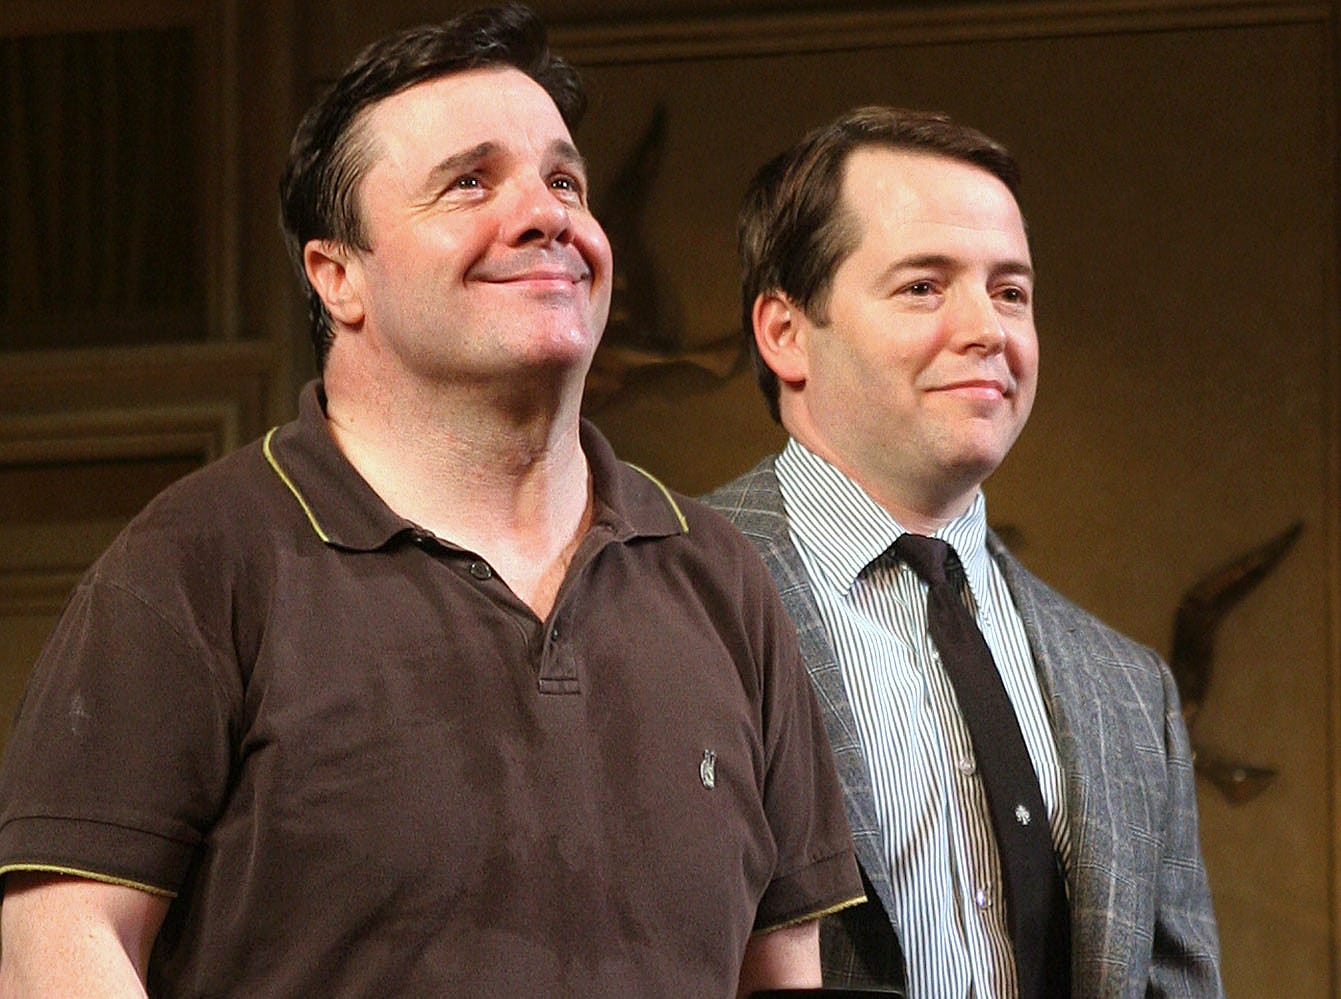 "Nathan Lane, left, and Matthew Broderick look out onto the audience during the curtain call for the opening night performance of Neil Simon's ""The Odd Couple"" at the Brooks Atkinson Theatre in New York Thursday Oct. 27, 2005. Lane stars in the role of Oscar Madison and Broderick in the role of Felix Ungar. (AP Photo/Tina Fineberg)"